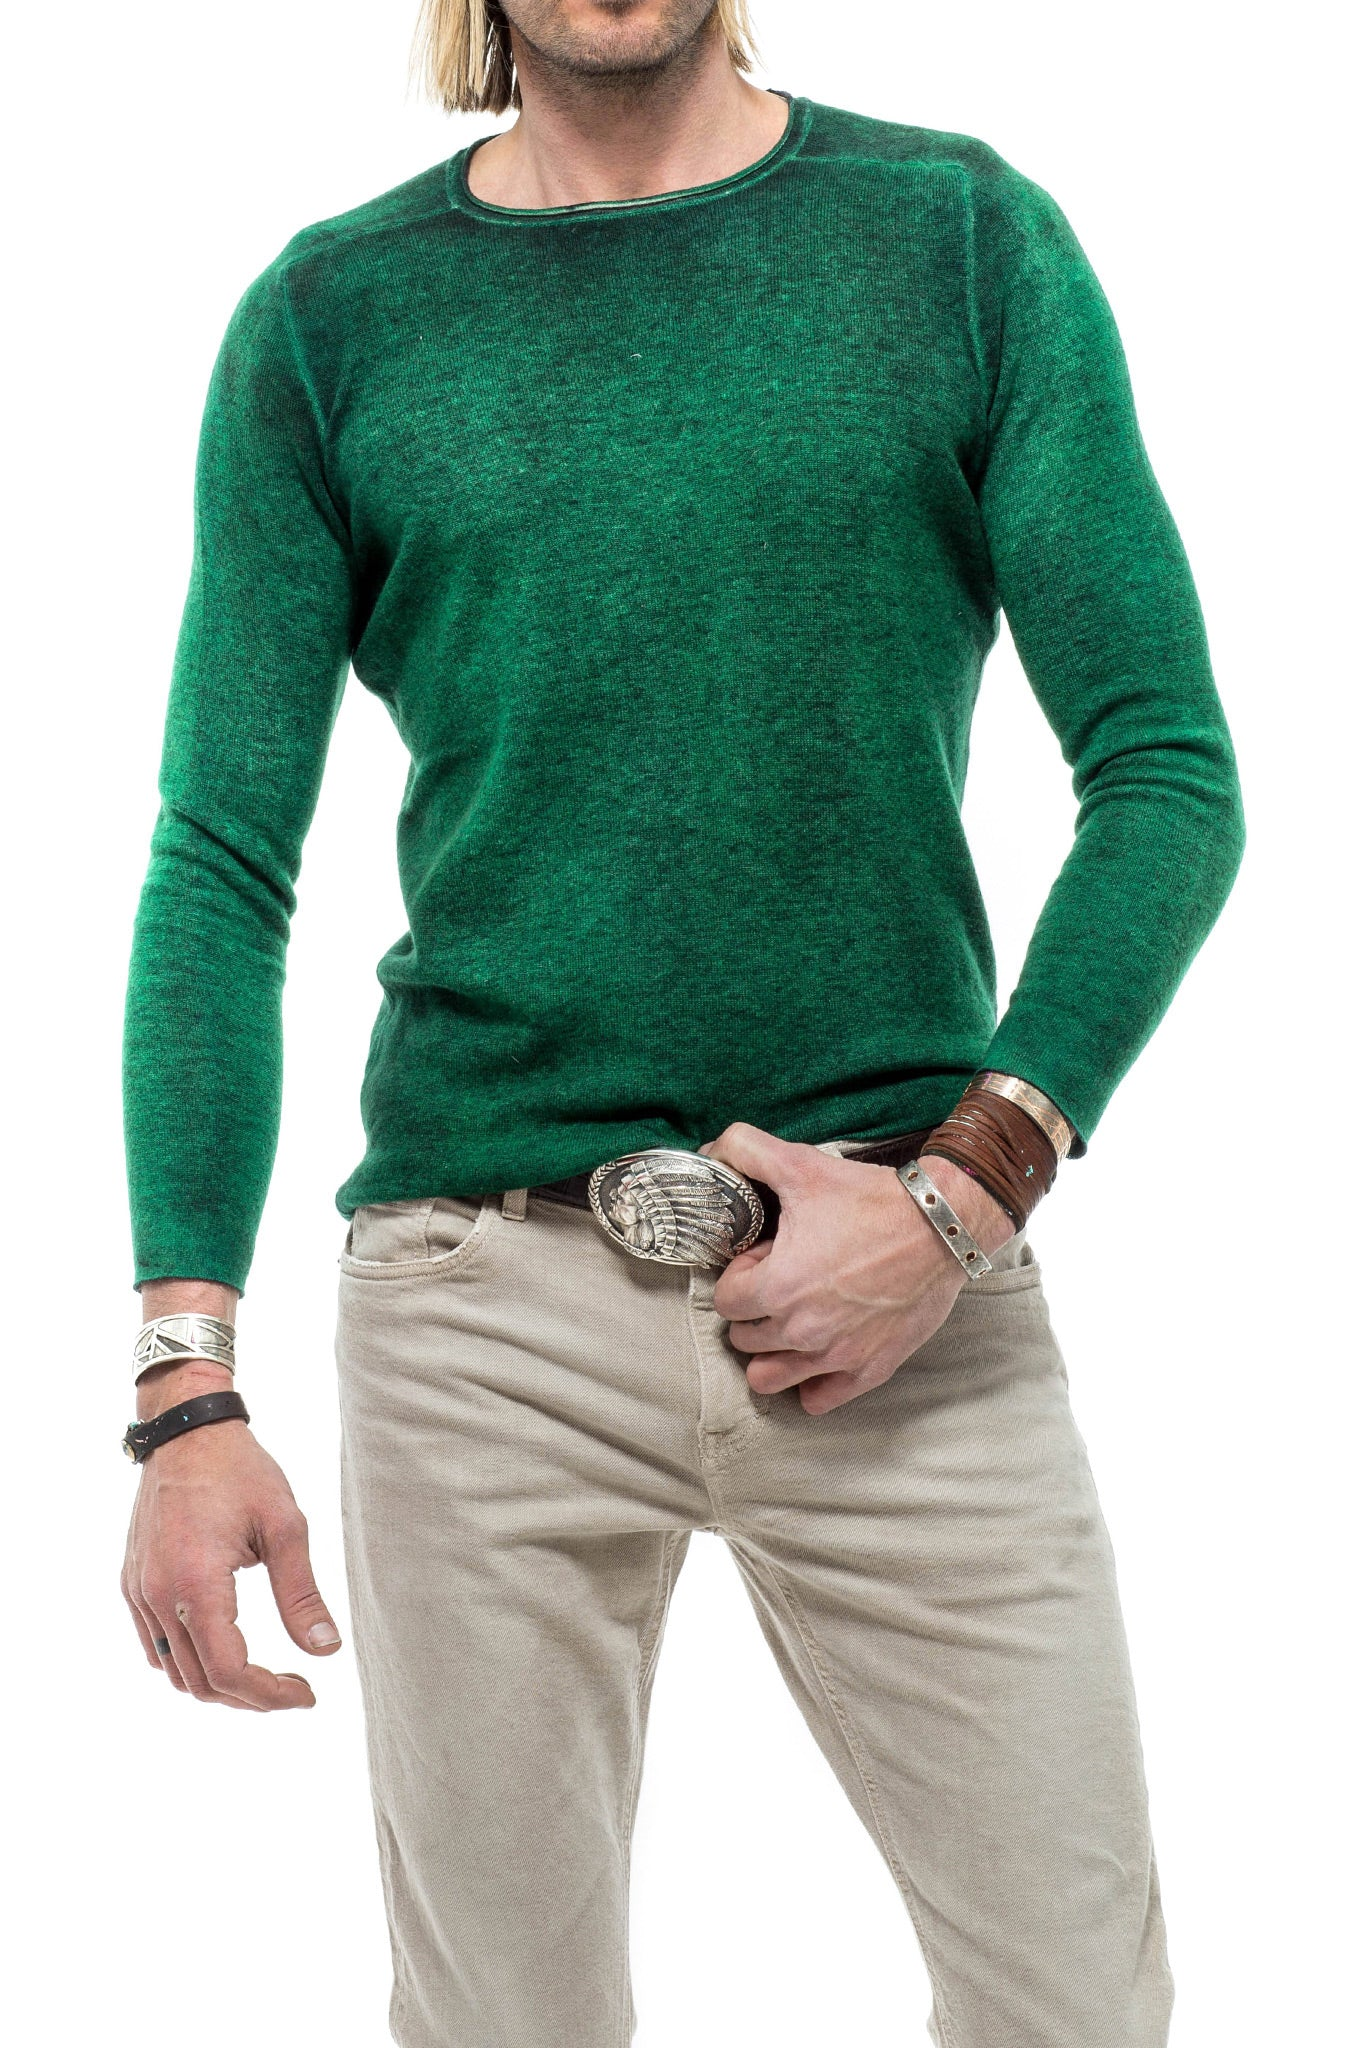 Avant Toi Sunbeam Cashmere Crew In Green (3601867636829)